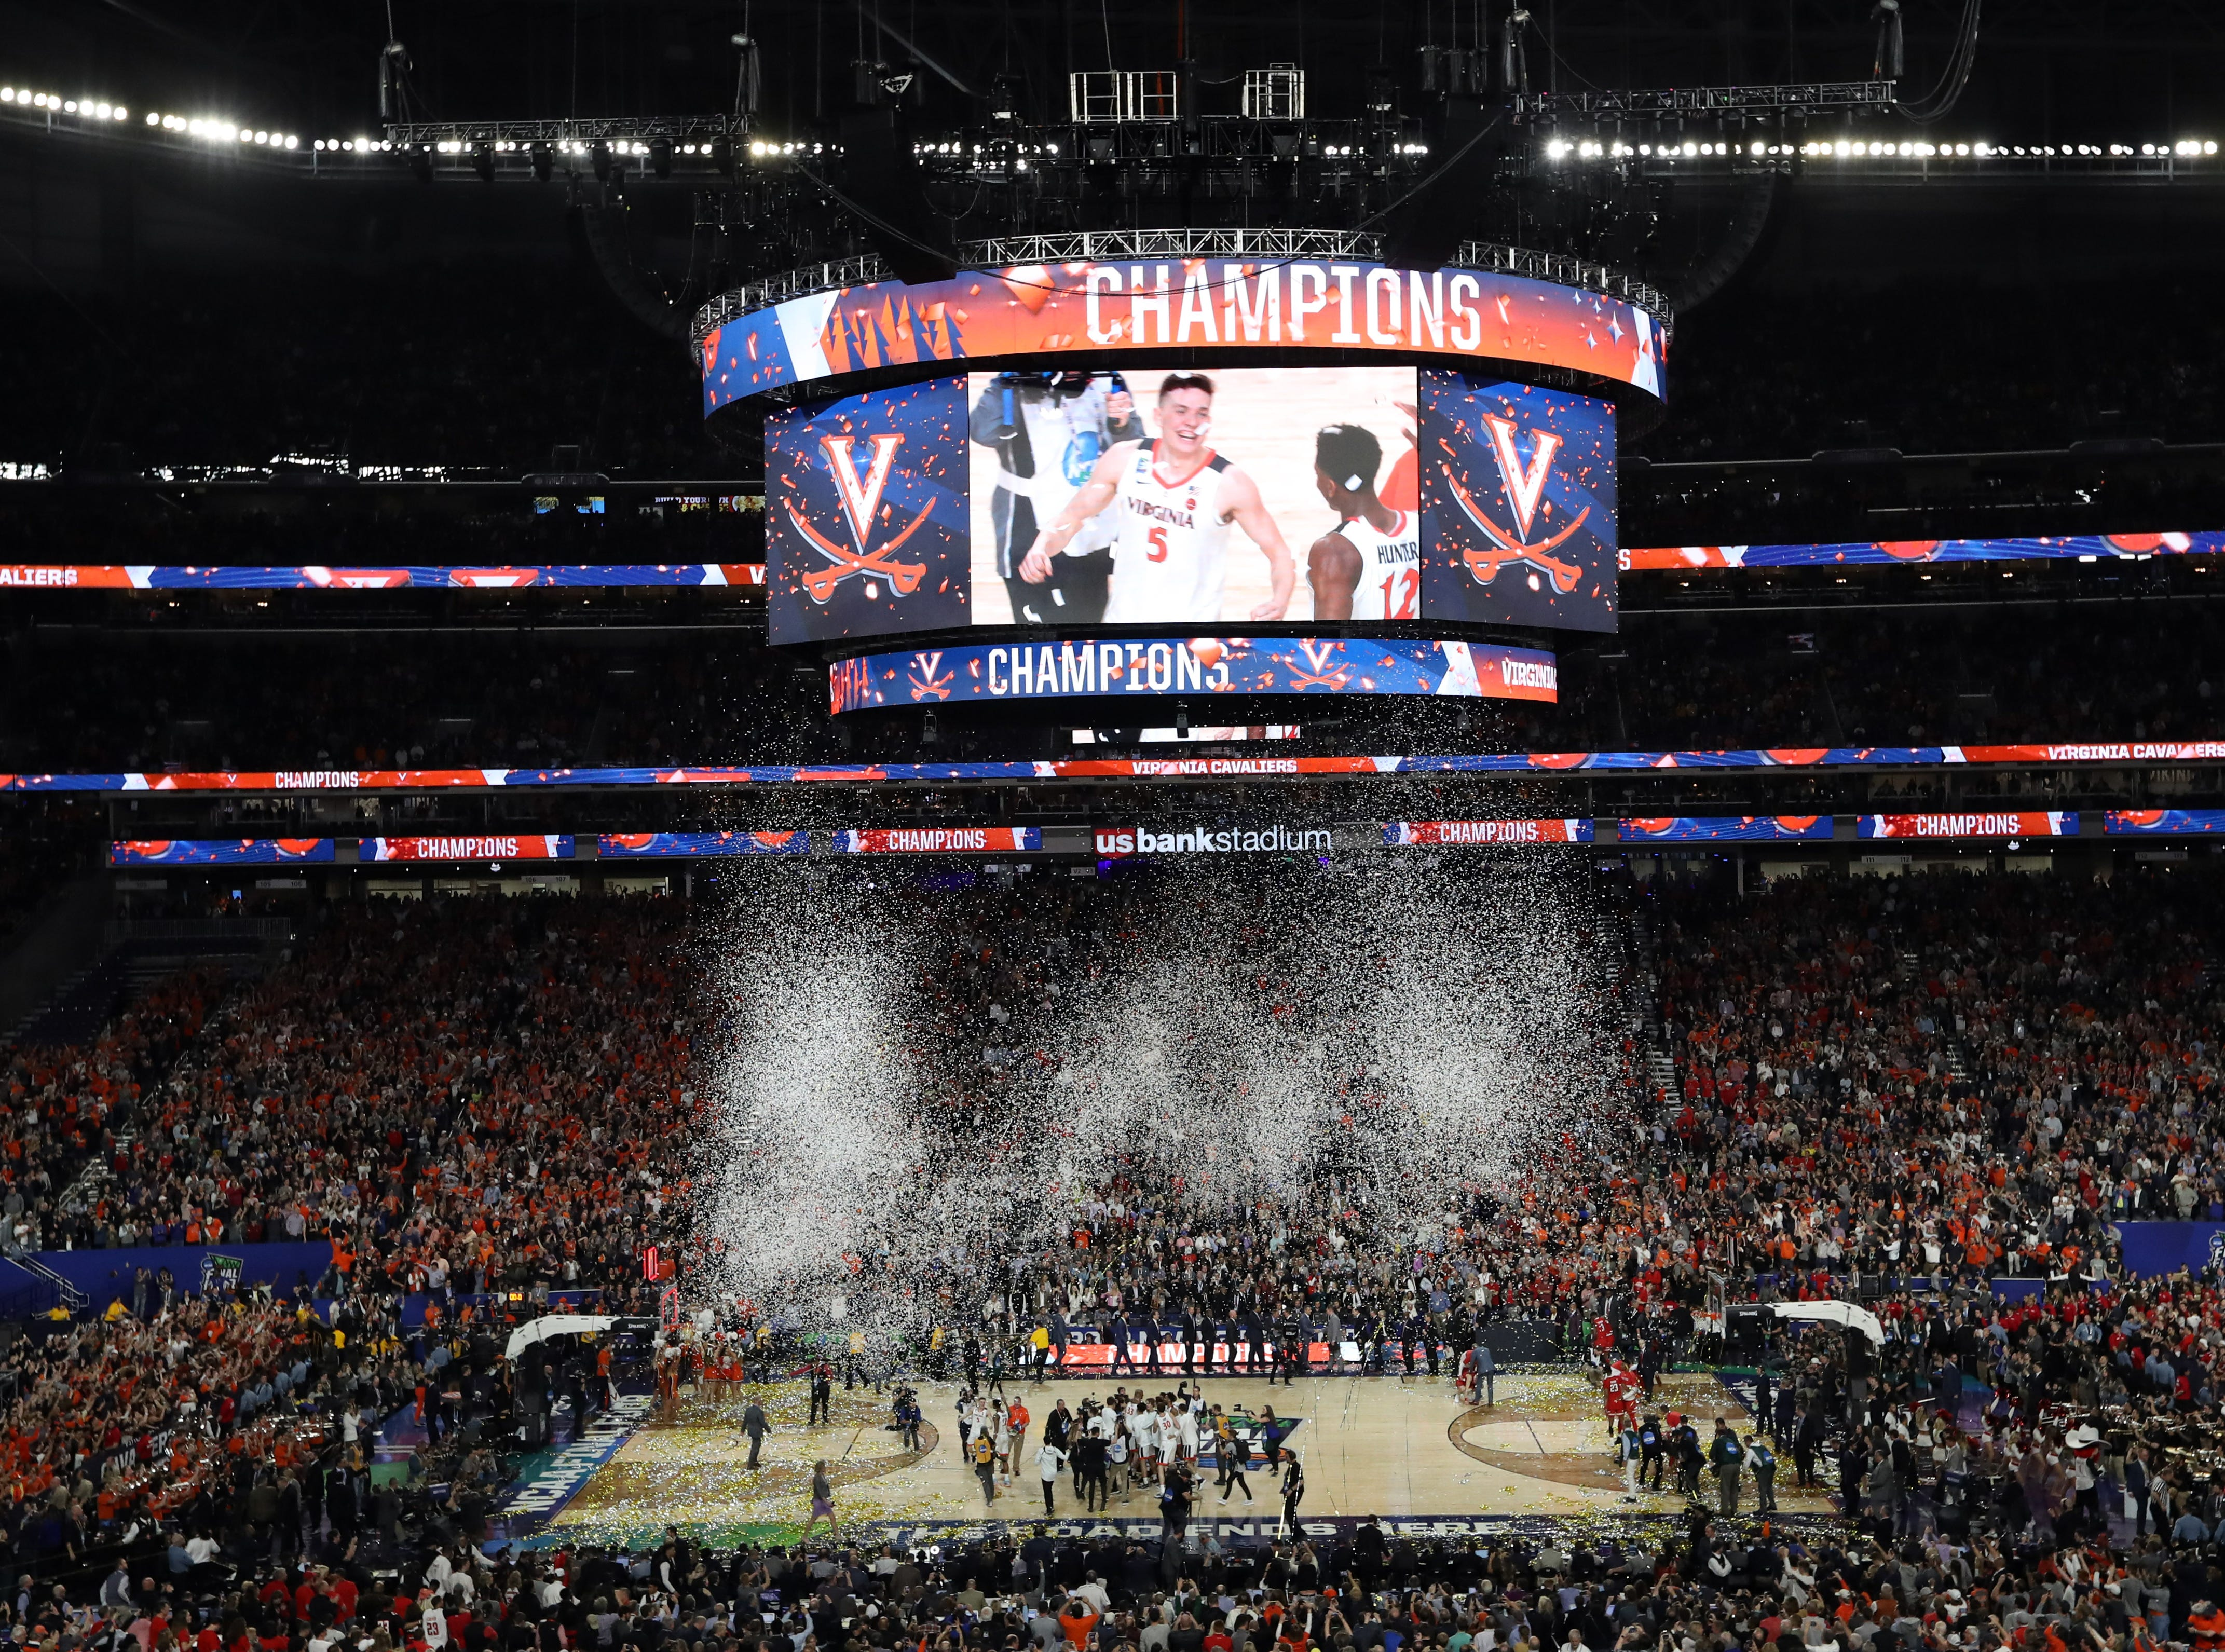 Apr 8, 2019; Minneapolis, MN, USA; A general view of US Bank Stadium after Virginia Cavaliers defeated Texas Tech Red Raiders in the championship game of the 2019 men's Final Four. Mandatory Credit: Brace Hemmelgarn-USA TODAY Sports